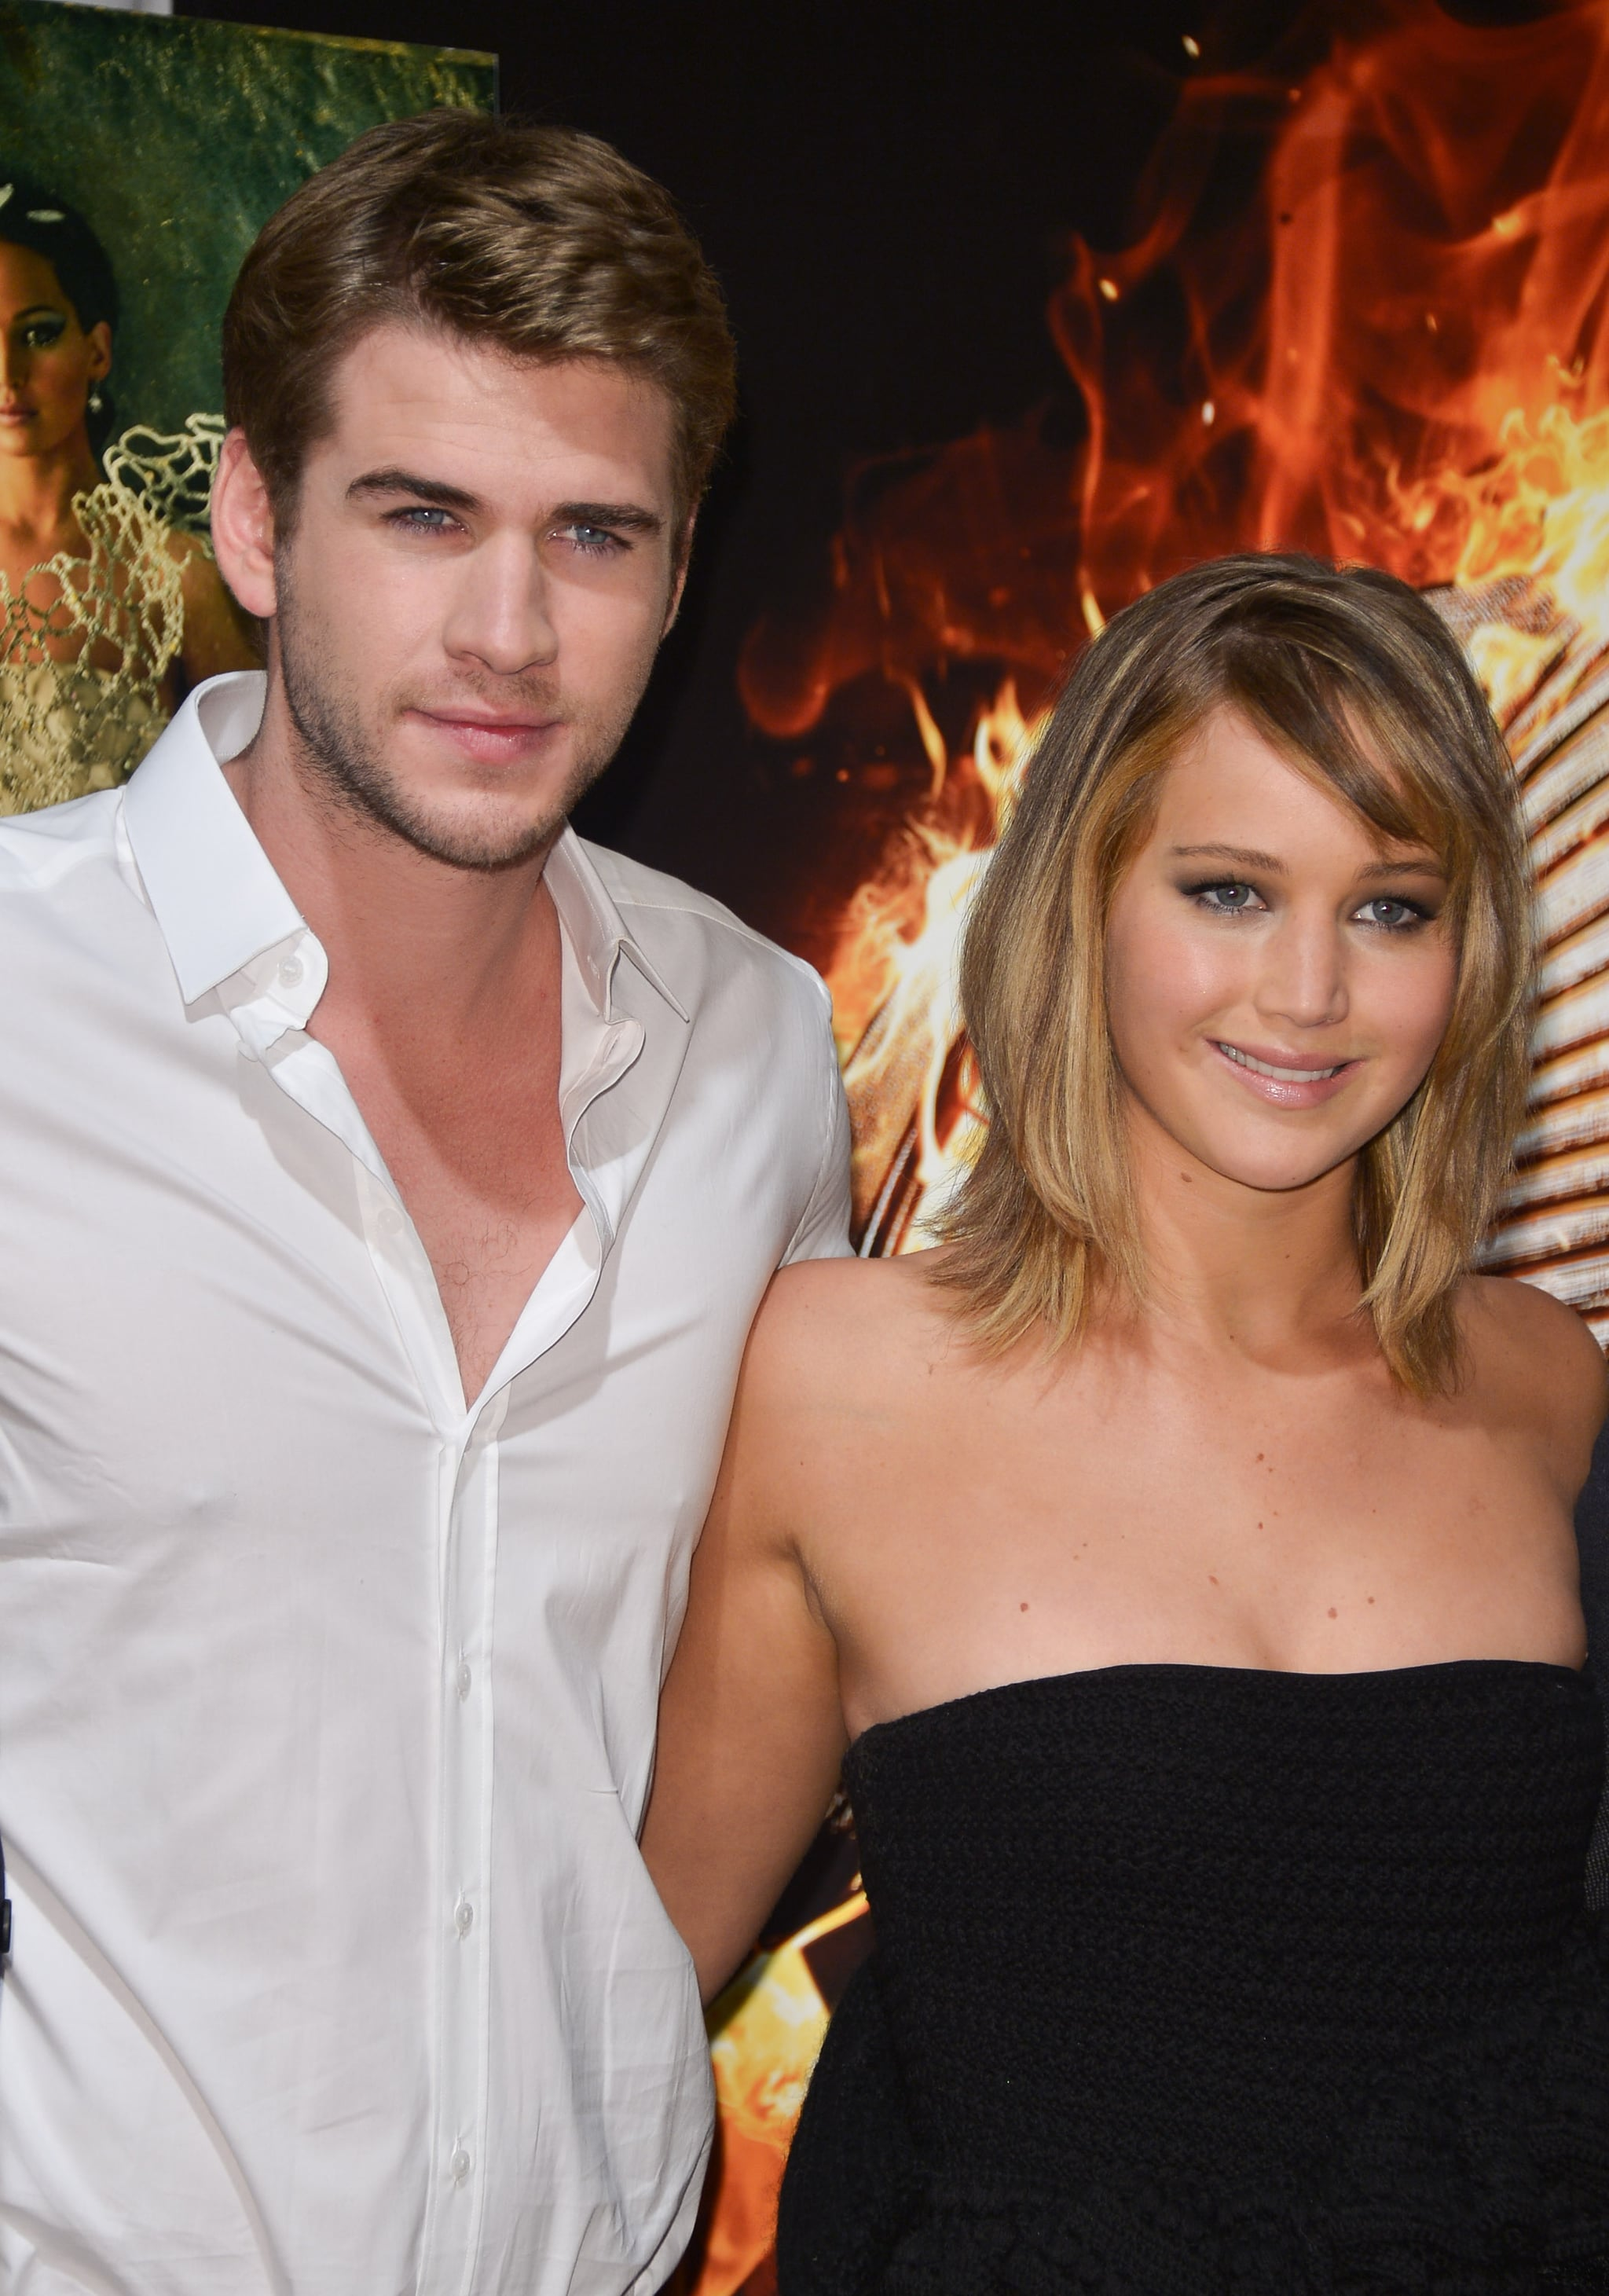 Liam Hemsworth and Jennifer Lawrence attended a Catching Fire photocall.